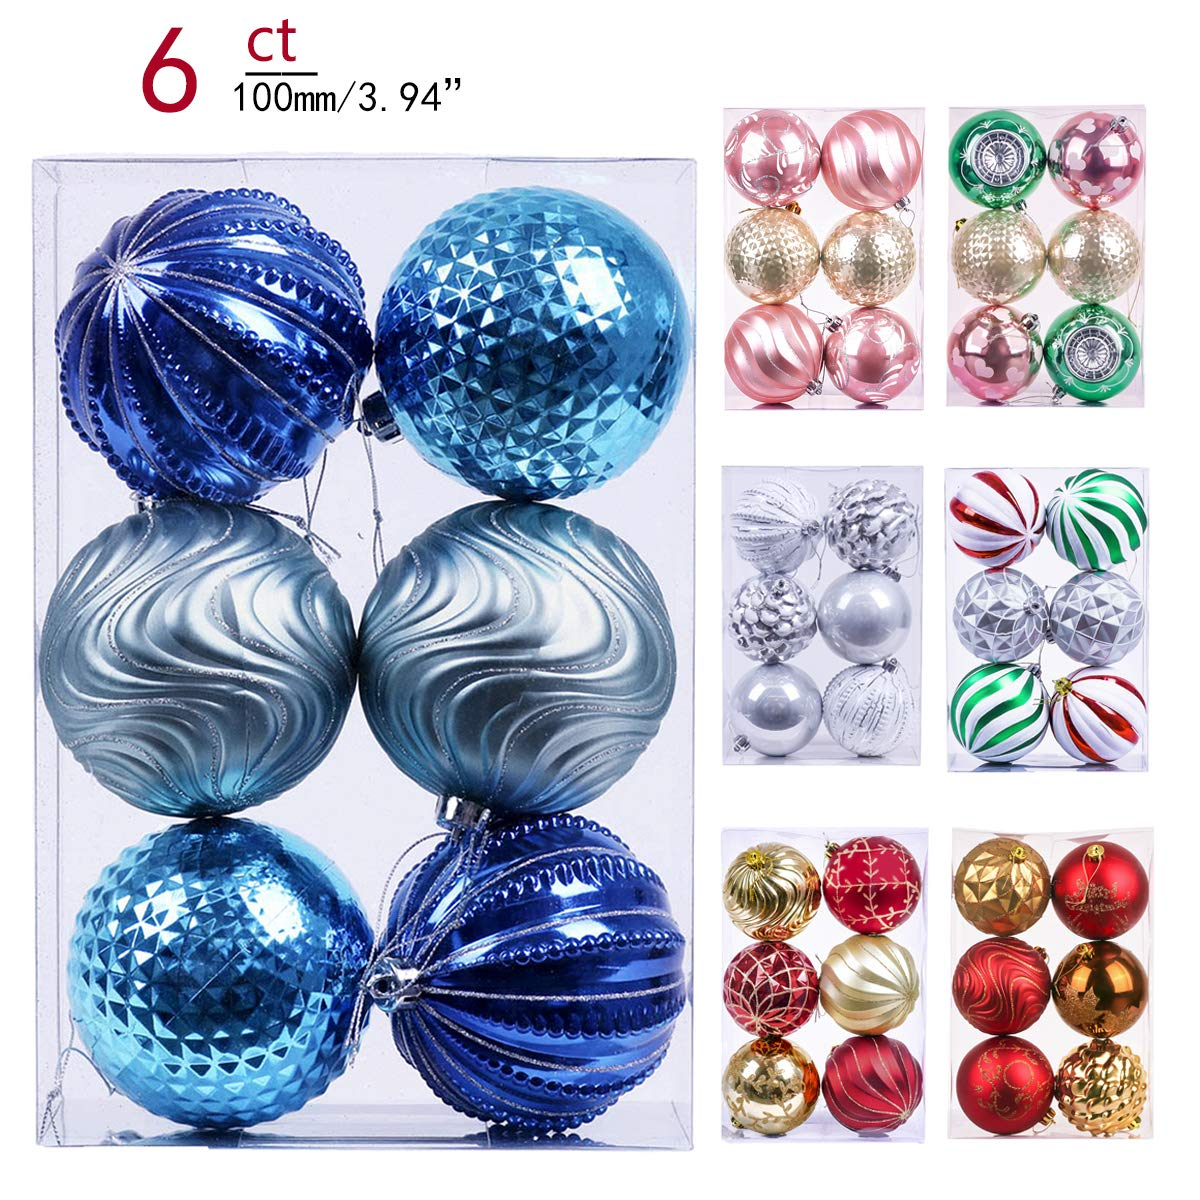 Valery Madelyn 6ct 100mm Babys First Christmas Shatterproof Christmas Ball Ornaments Decorationthemed Tree Skirtnot Included Eg0101 0174